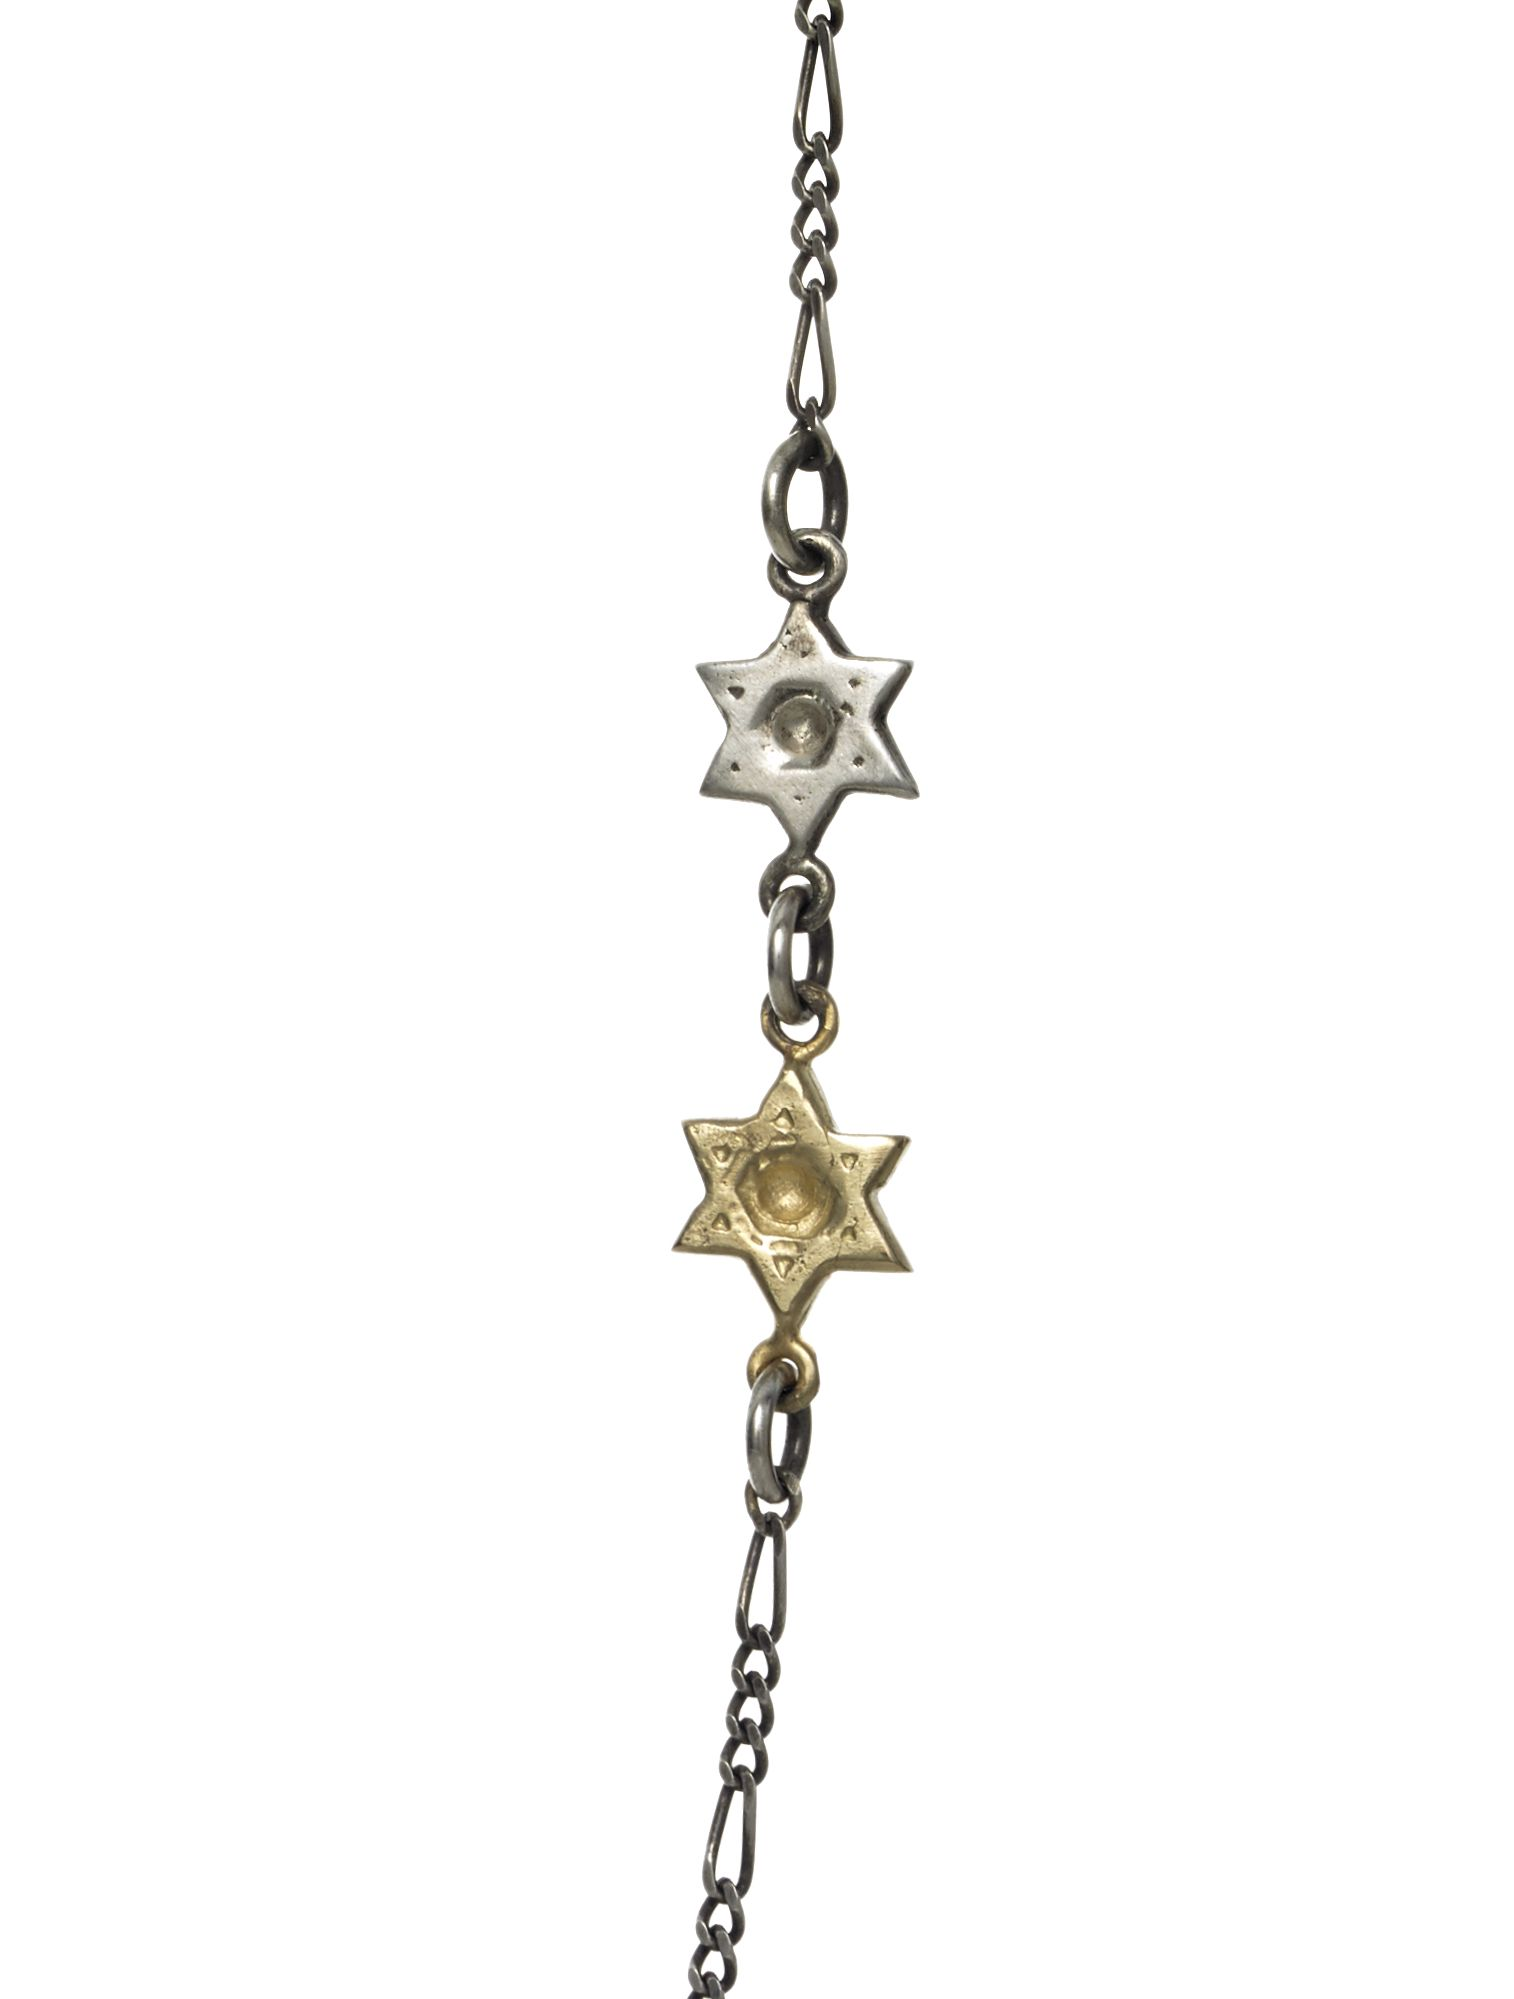 Double Floating Stars of David in s/s & 14k yellow gold